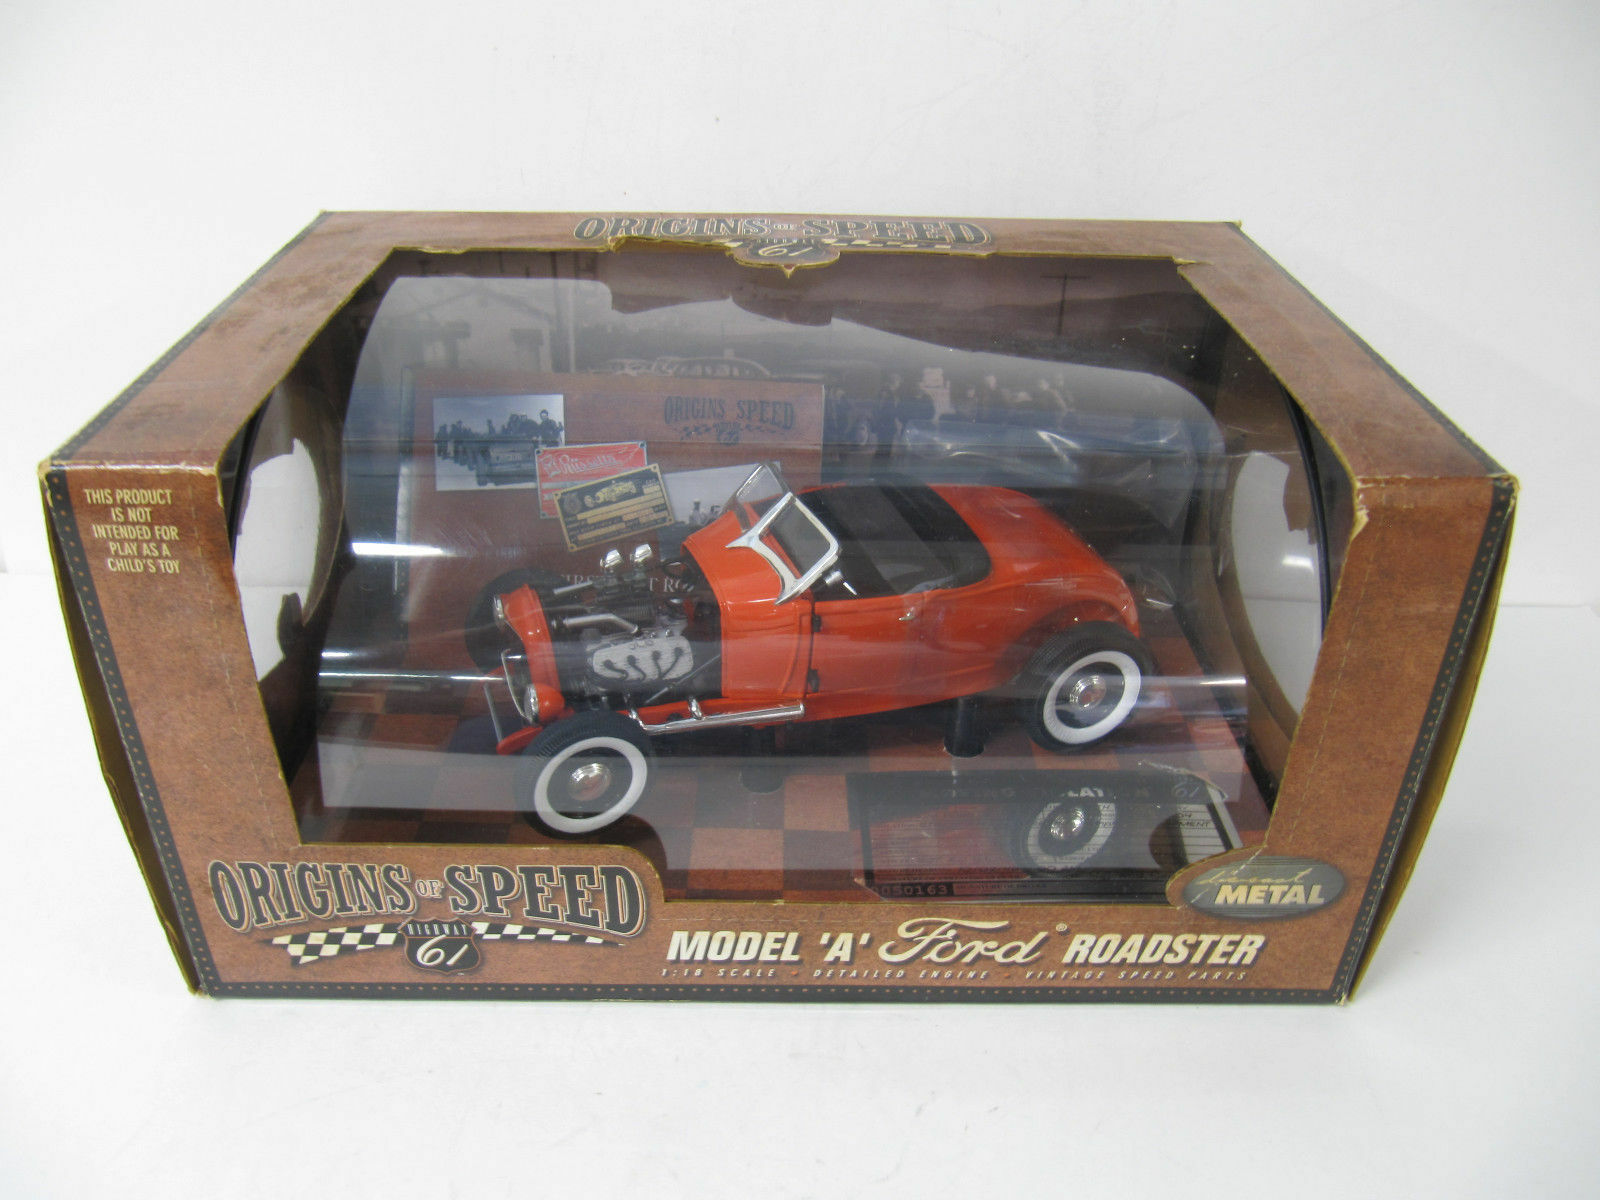 1:18 Highway 61  50163 Origins of speed 1929 Ford Model A ROADSTER arancia/rosso